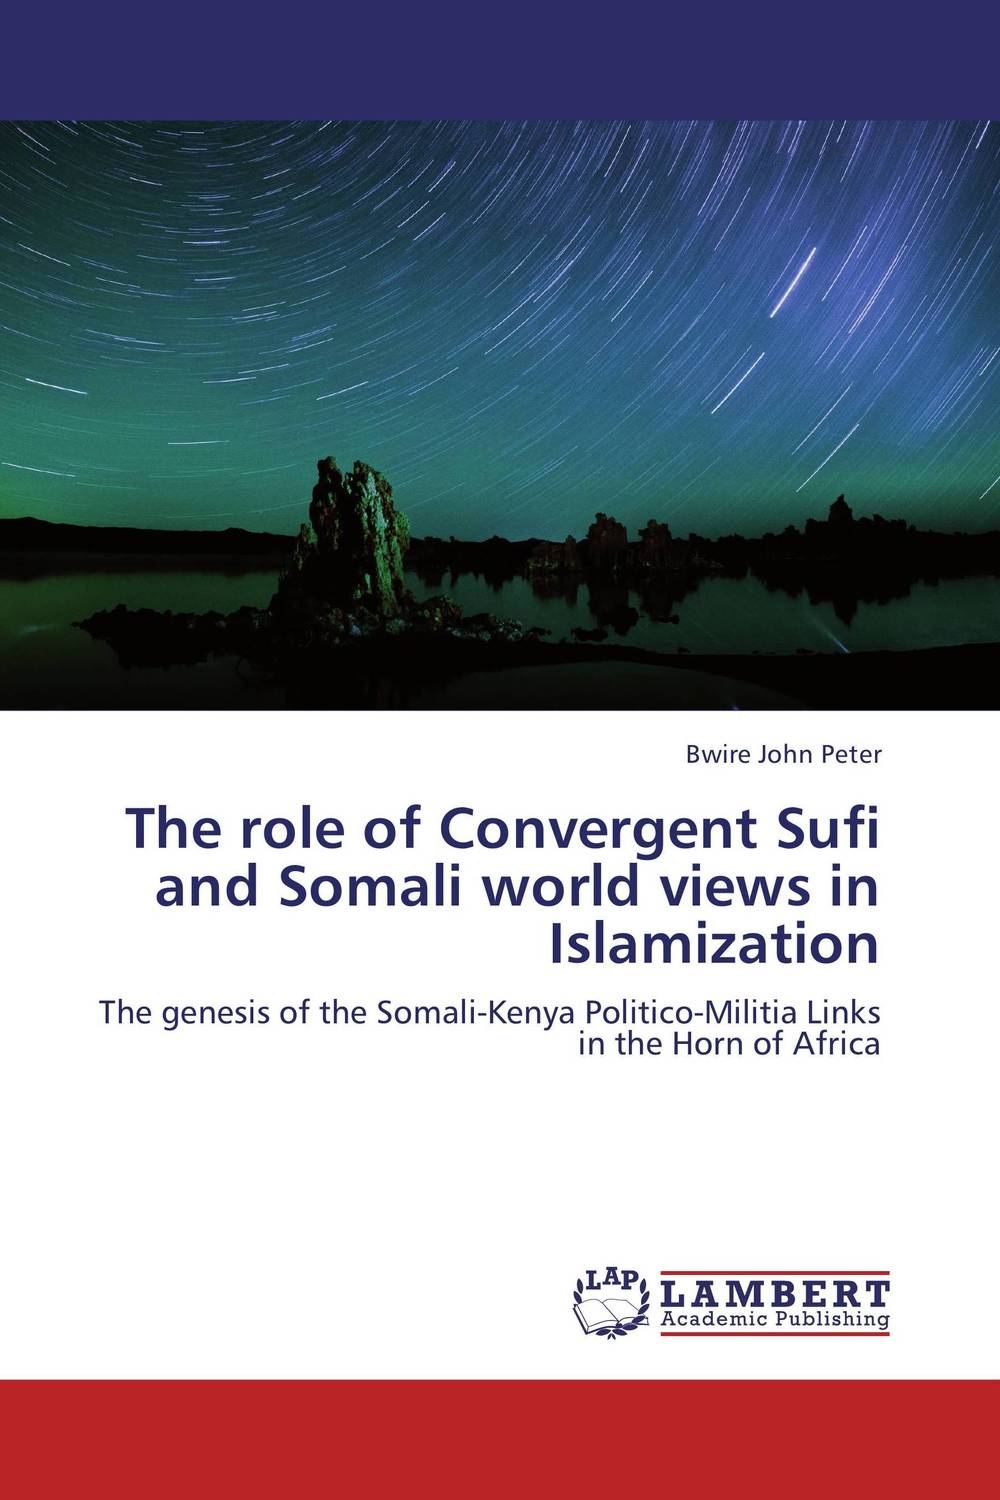 The role of Convergent Sufi and Somali world views in Islamization love of sufi in the sphere of mevlana